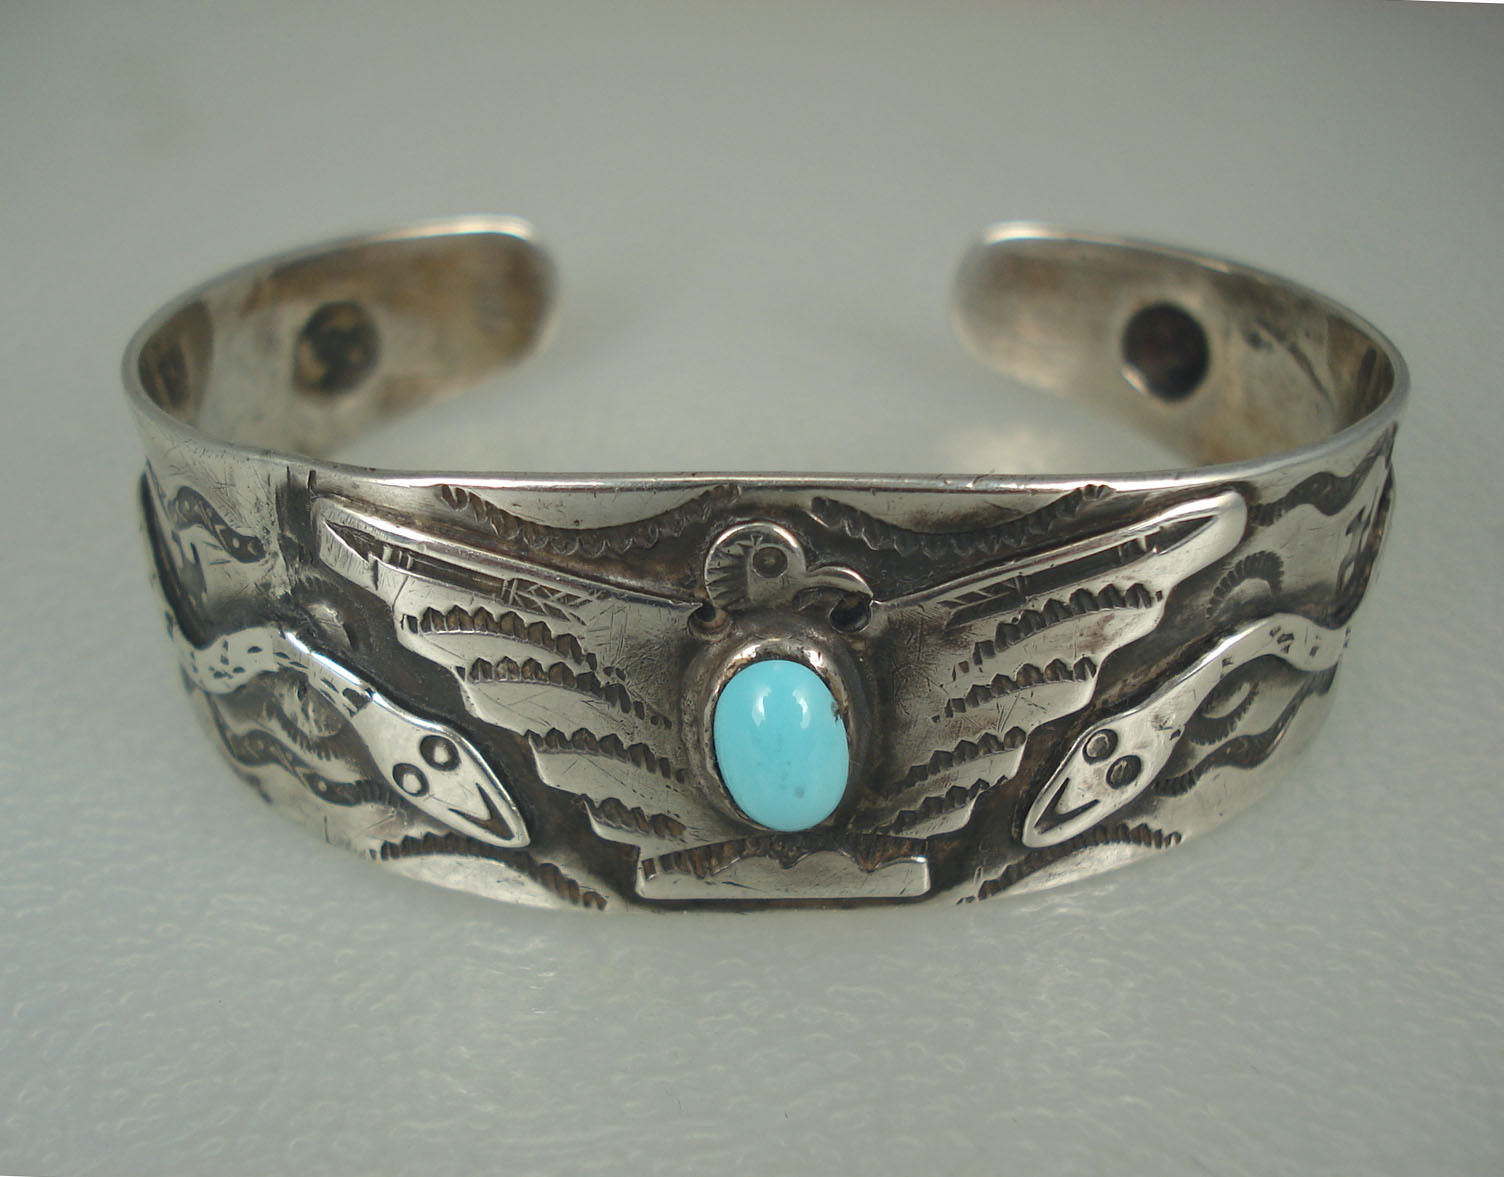 Turquoise | Old pawn jewelry